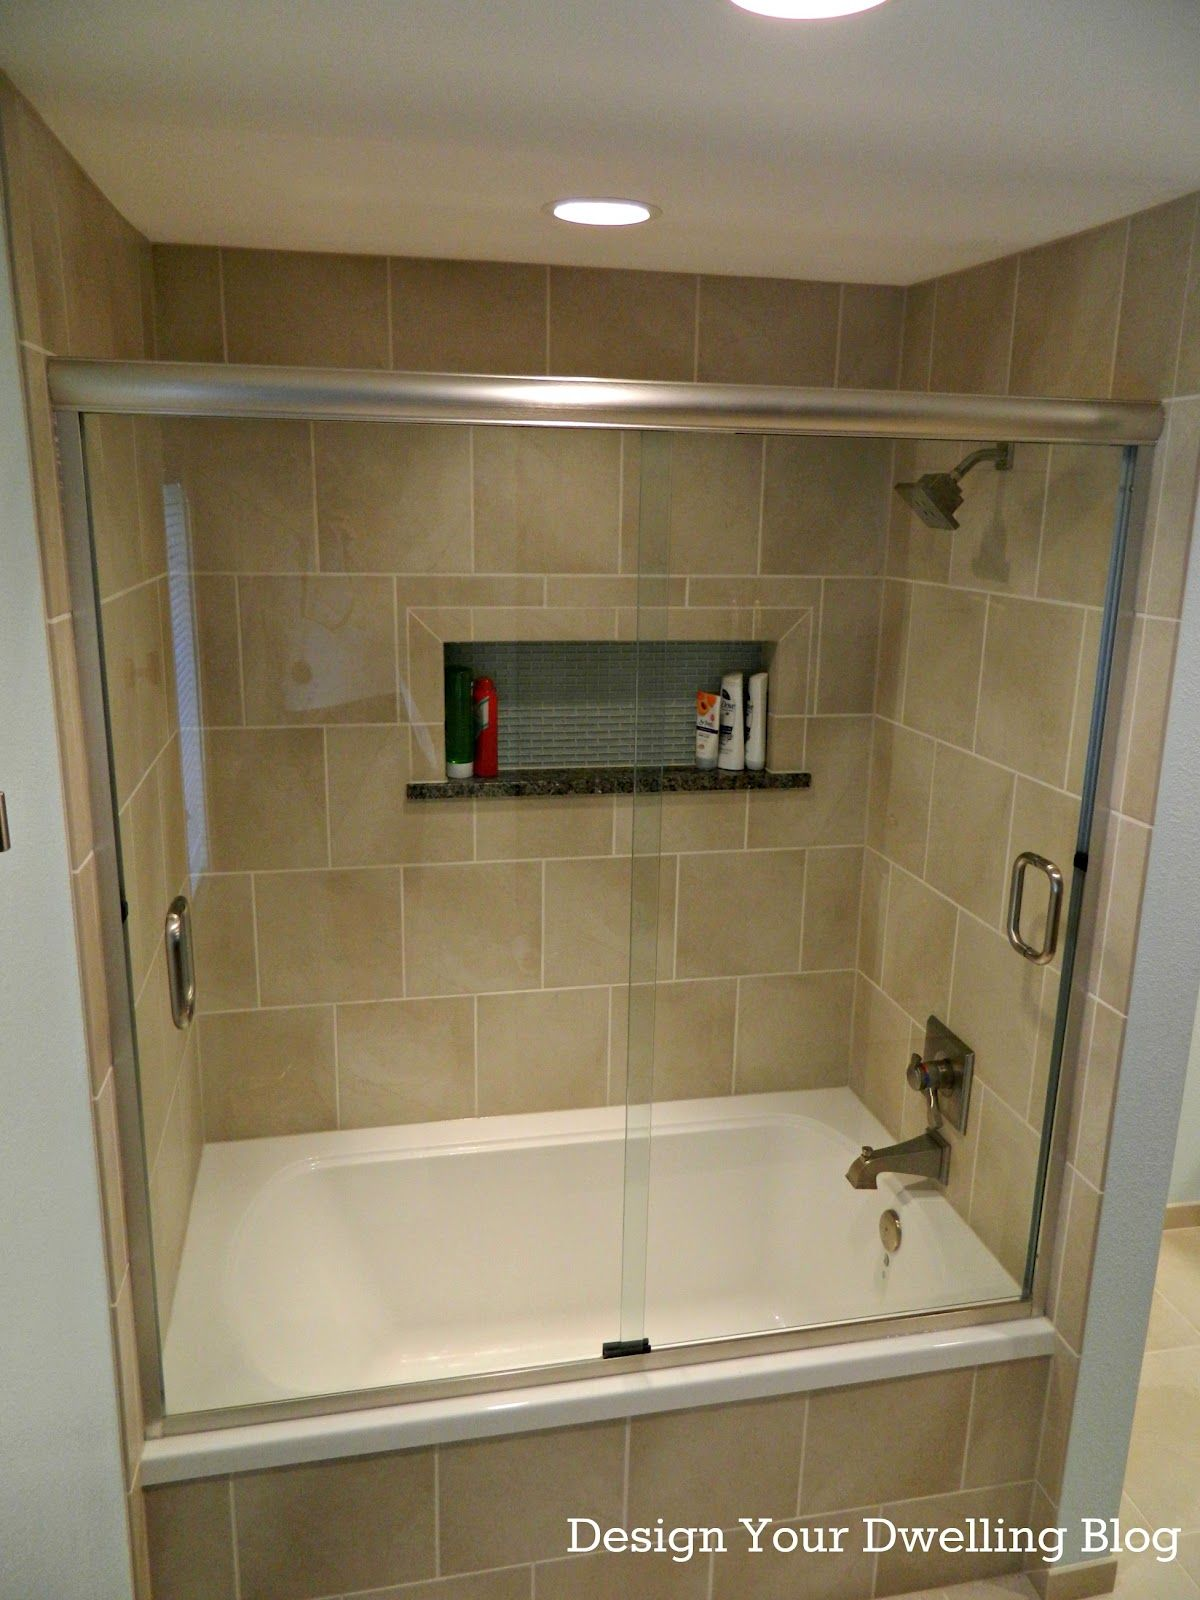 Bathroom Bathroom Picturesque Sliding Glass Shower Cubicle With White Tubs Bathroom Shower Designs Bathroom Shower Floor